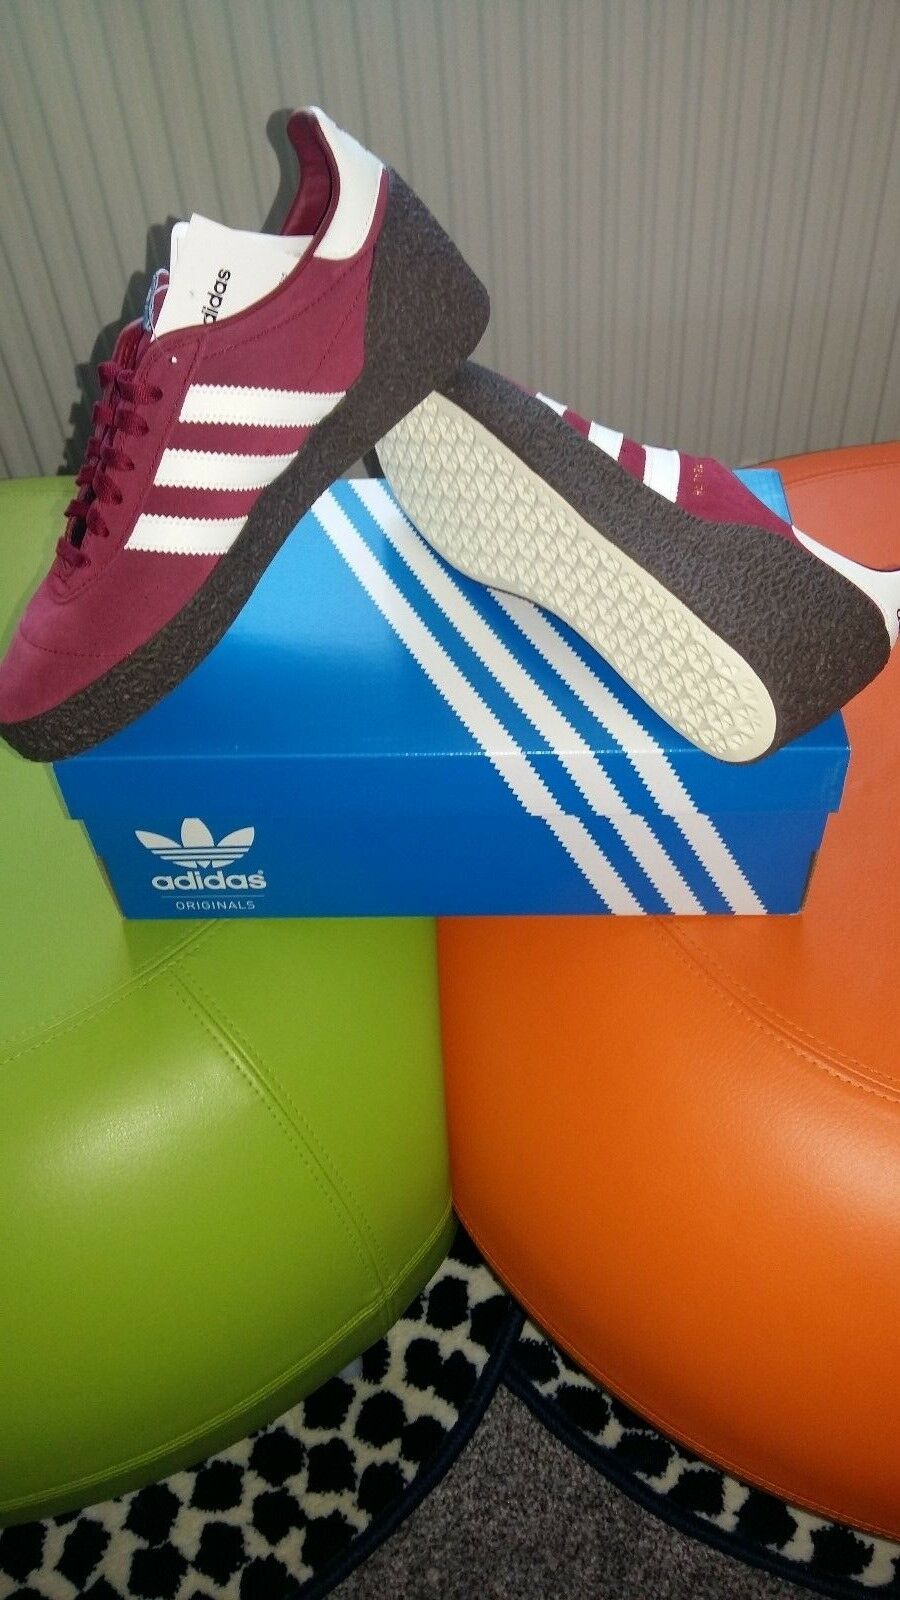 Adidas Montreal 76  originals.. Terrace classics..trainers Größe 9 uk eur 43 1 3